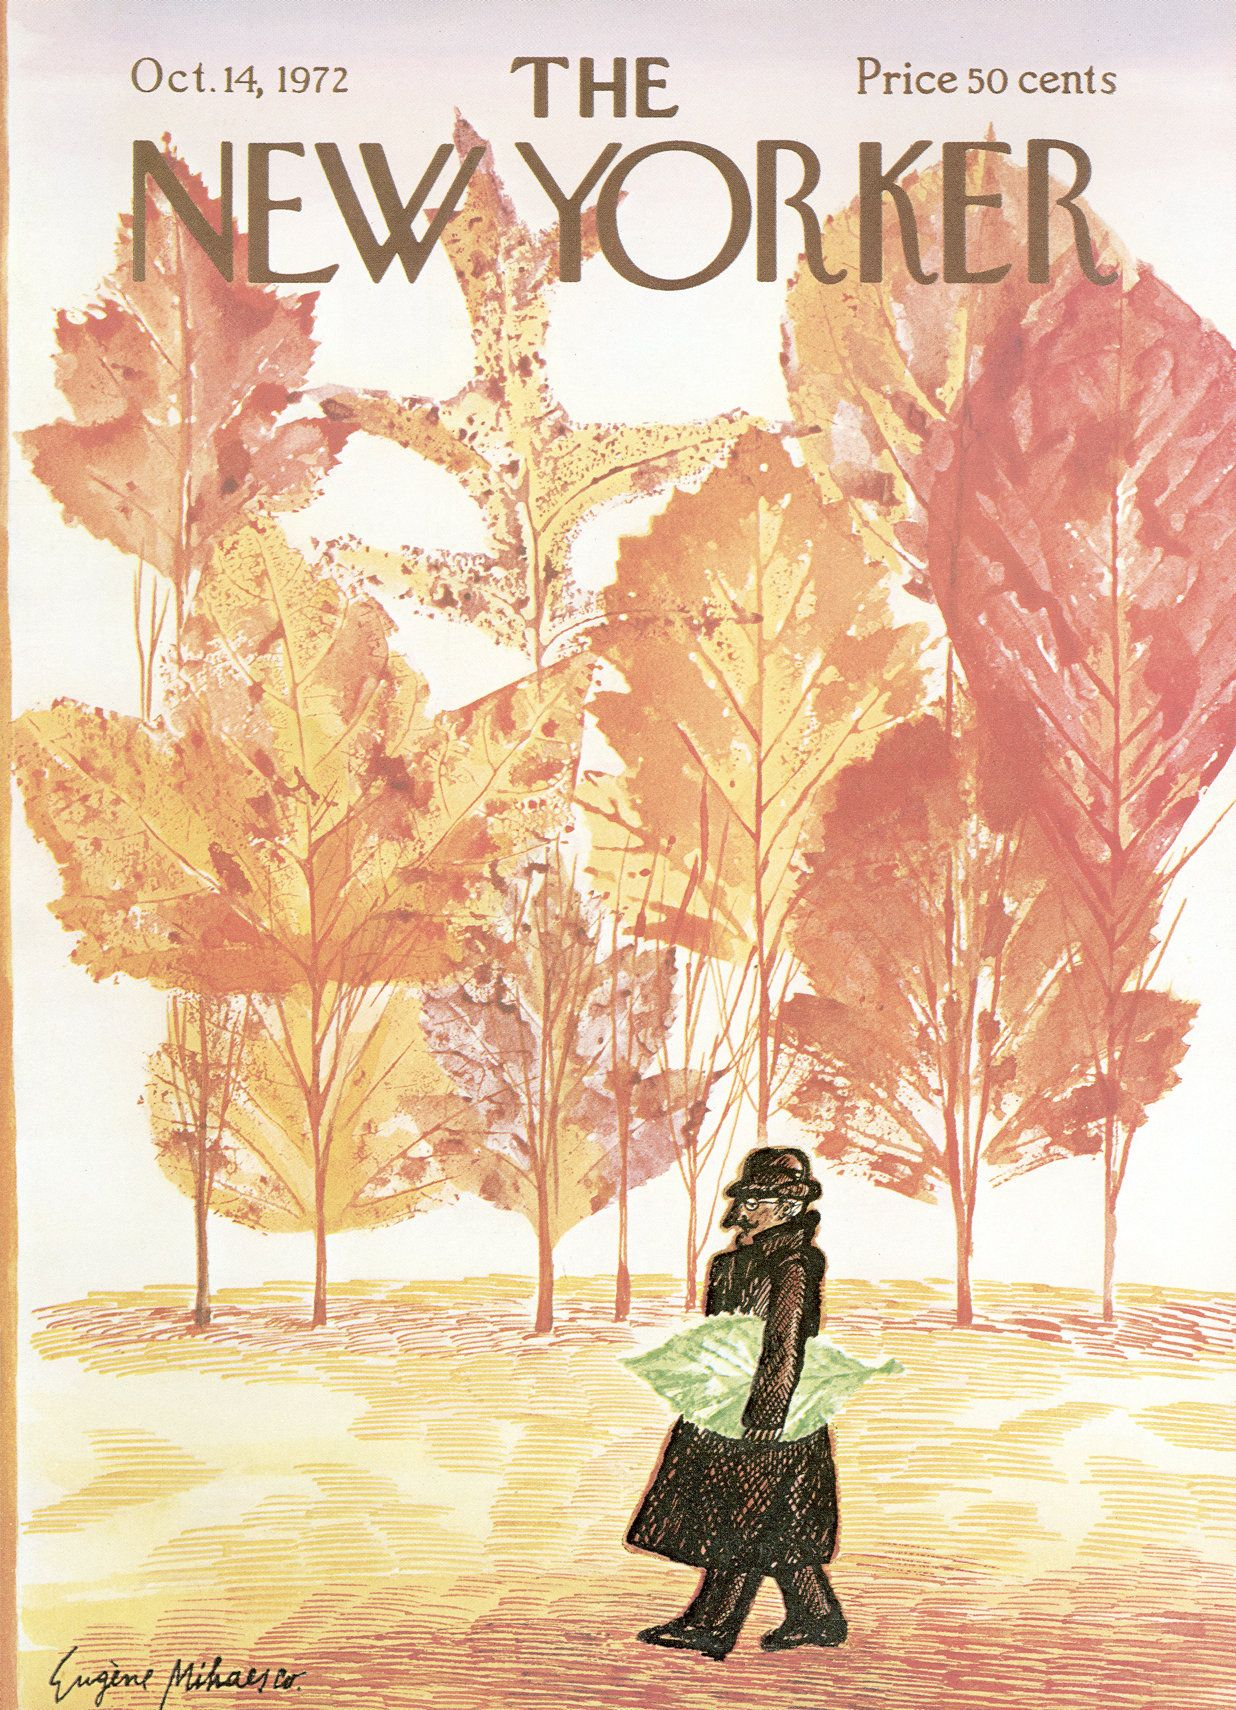 The New Yorker - Saturday, October 14, 1972 - Issue # 2487 - Vol. 48 - N° 34 - Cover by : Eugène Mihaesco